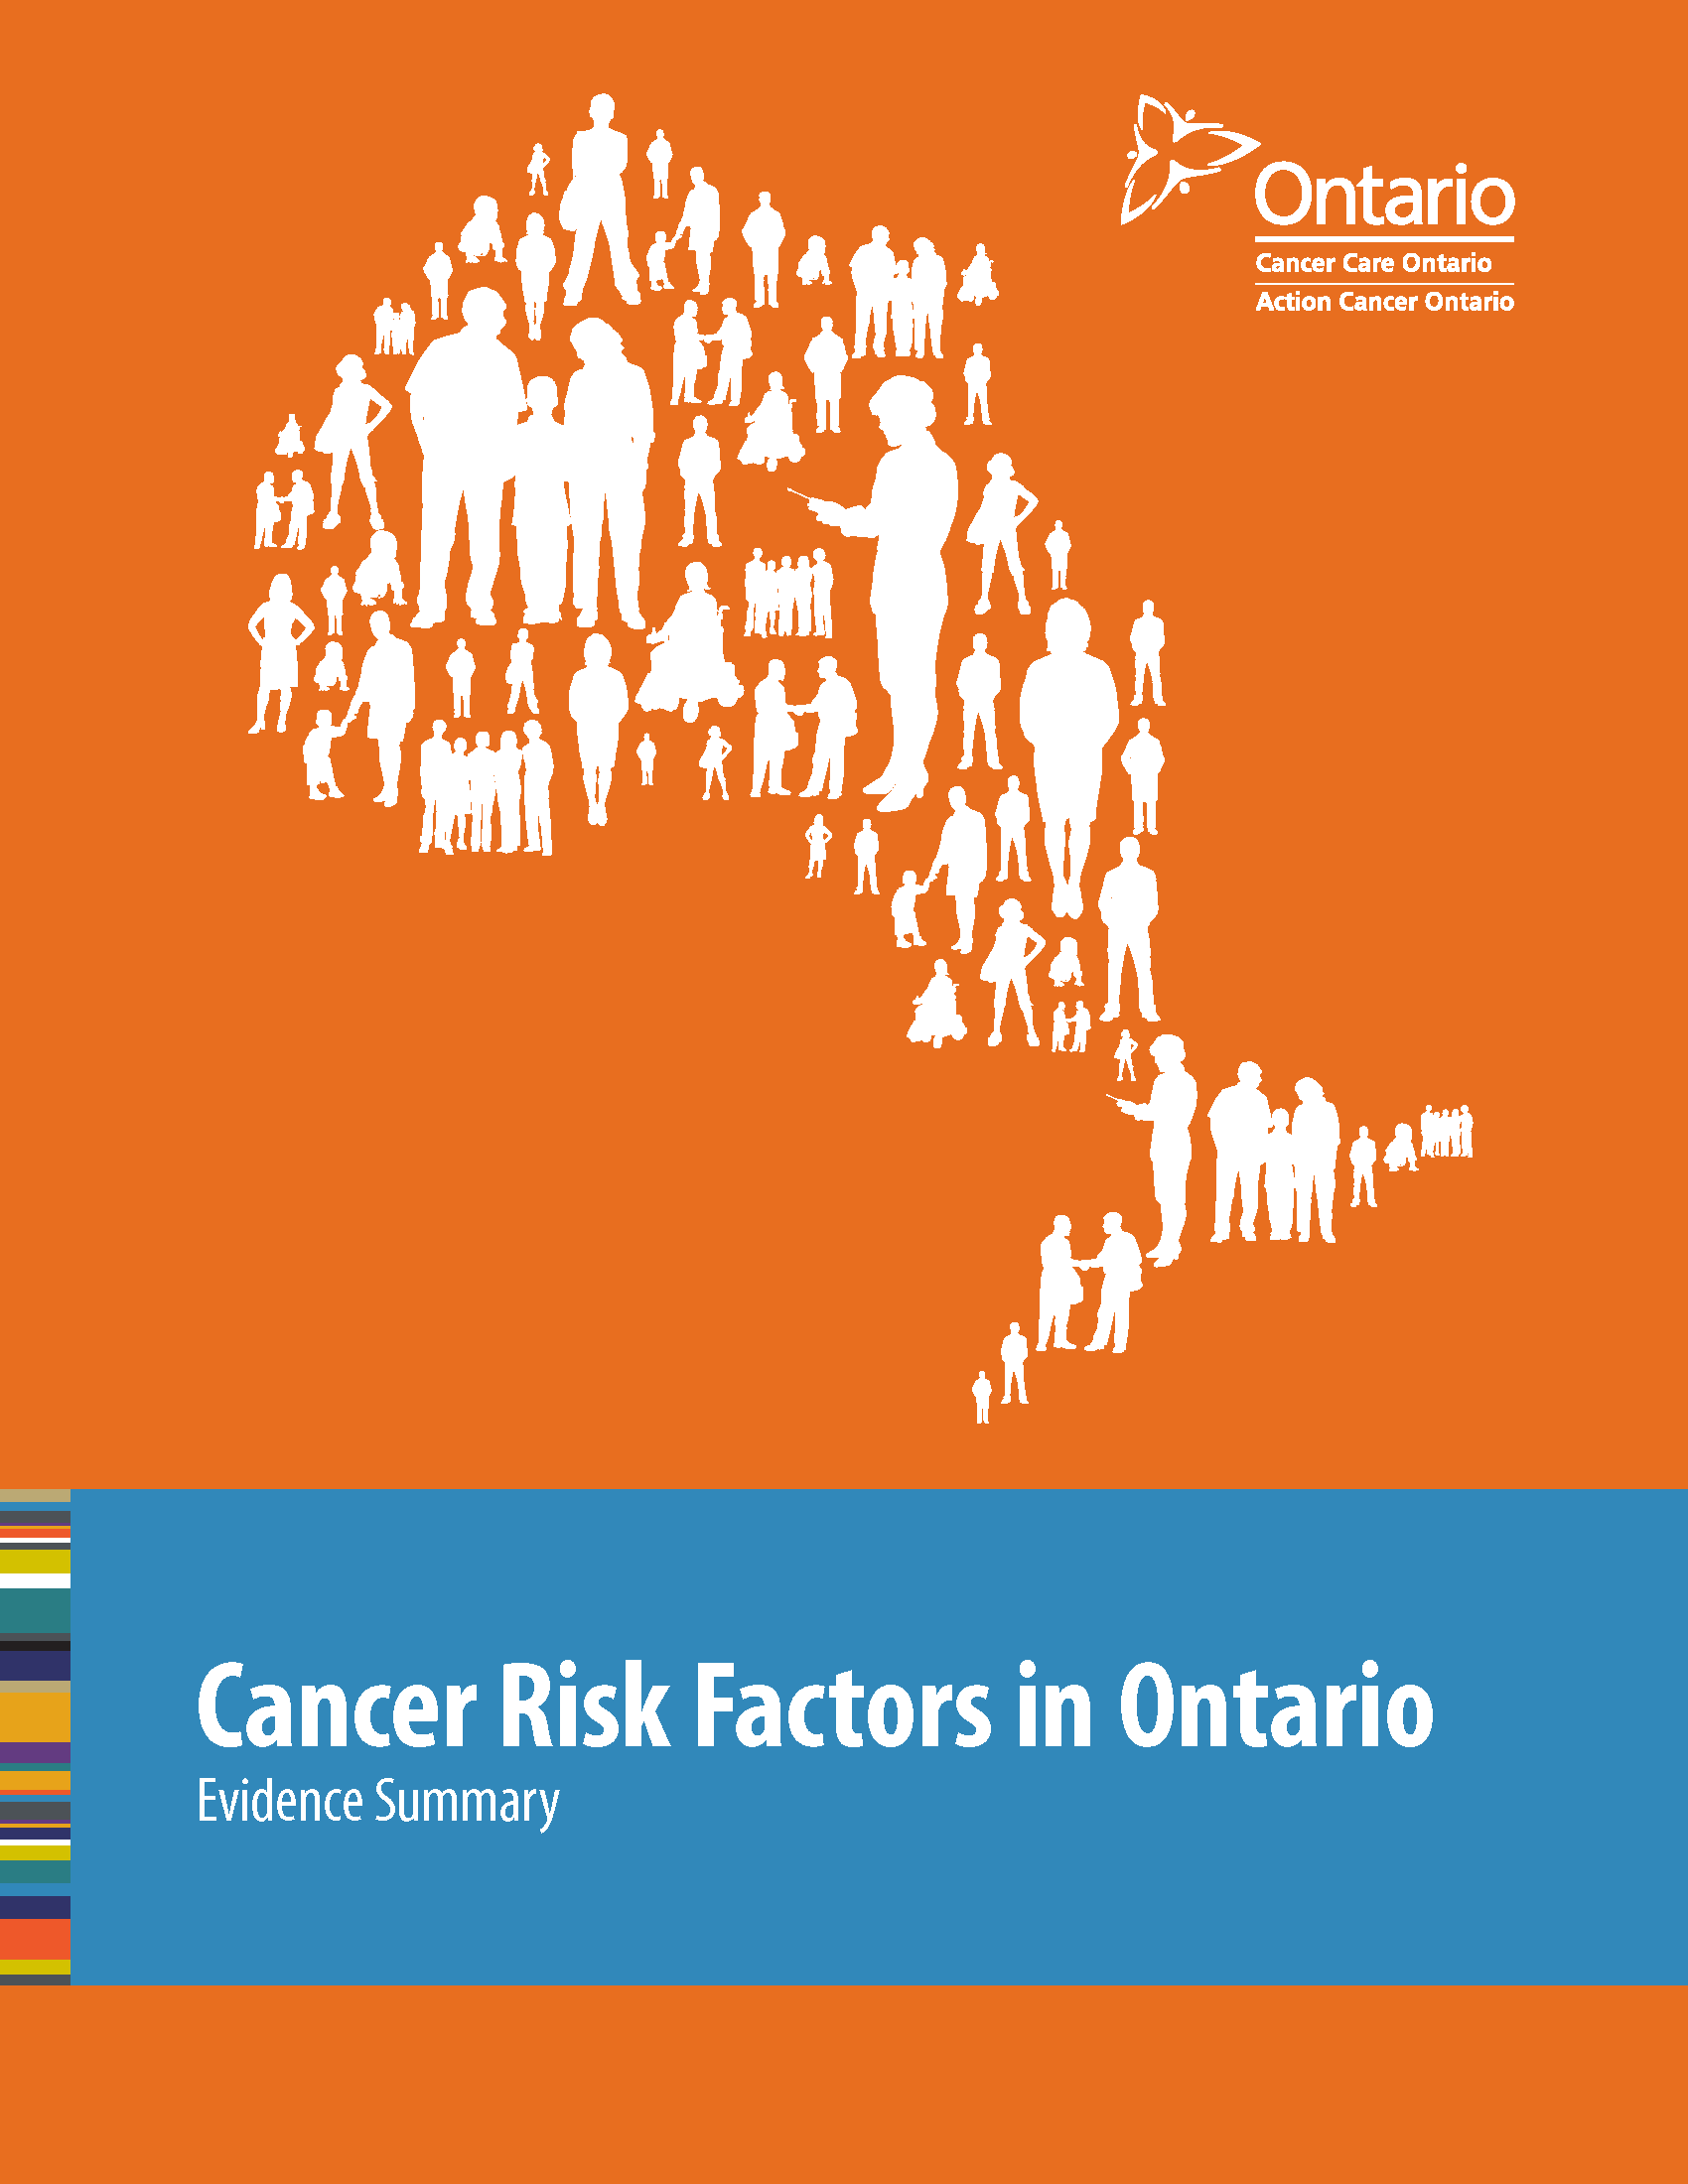 Cancer Risk Factors in Ontario: Evidence Summary